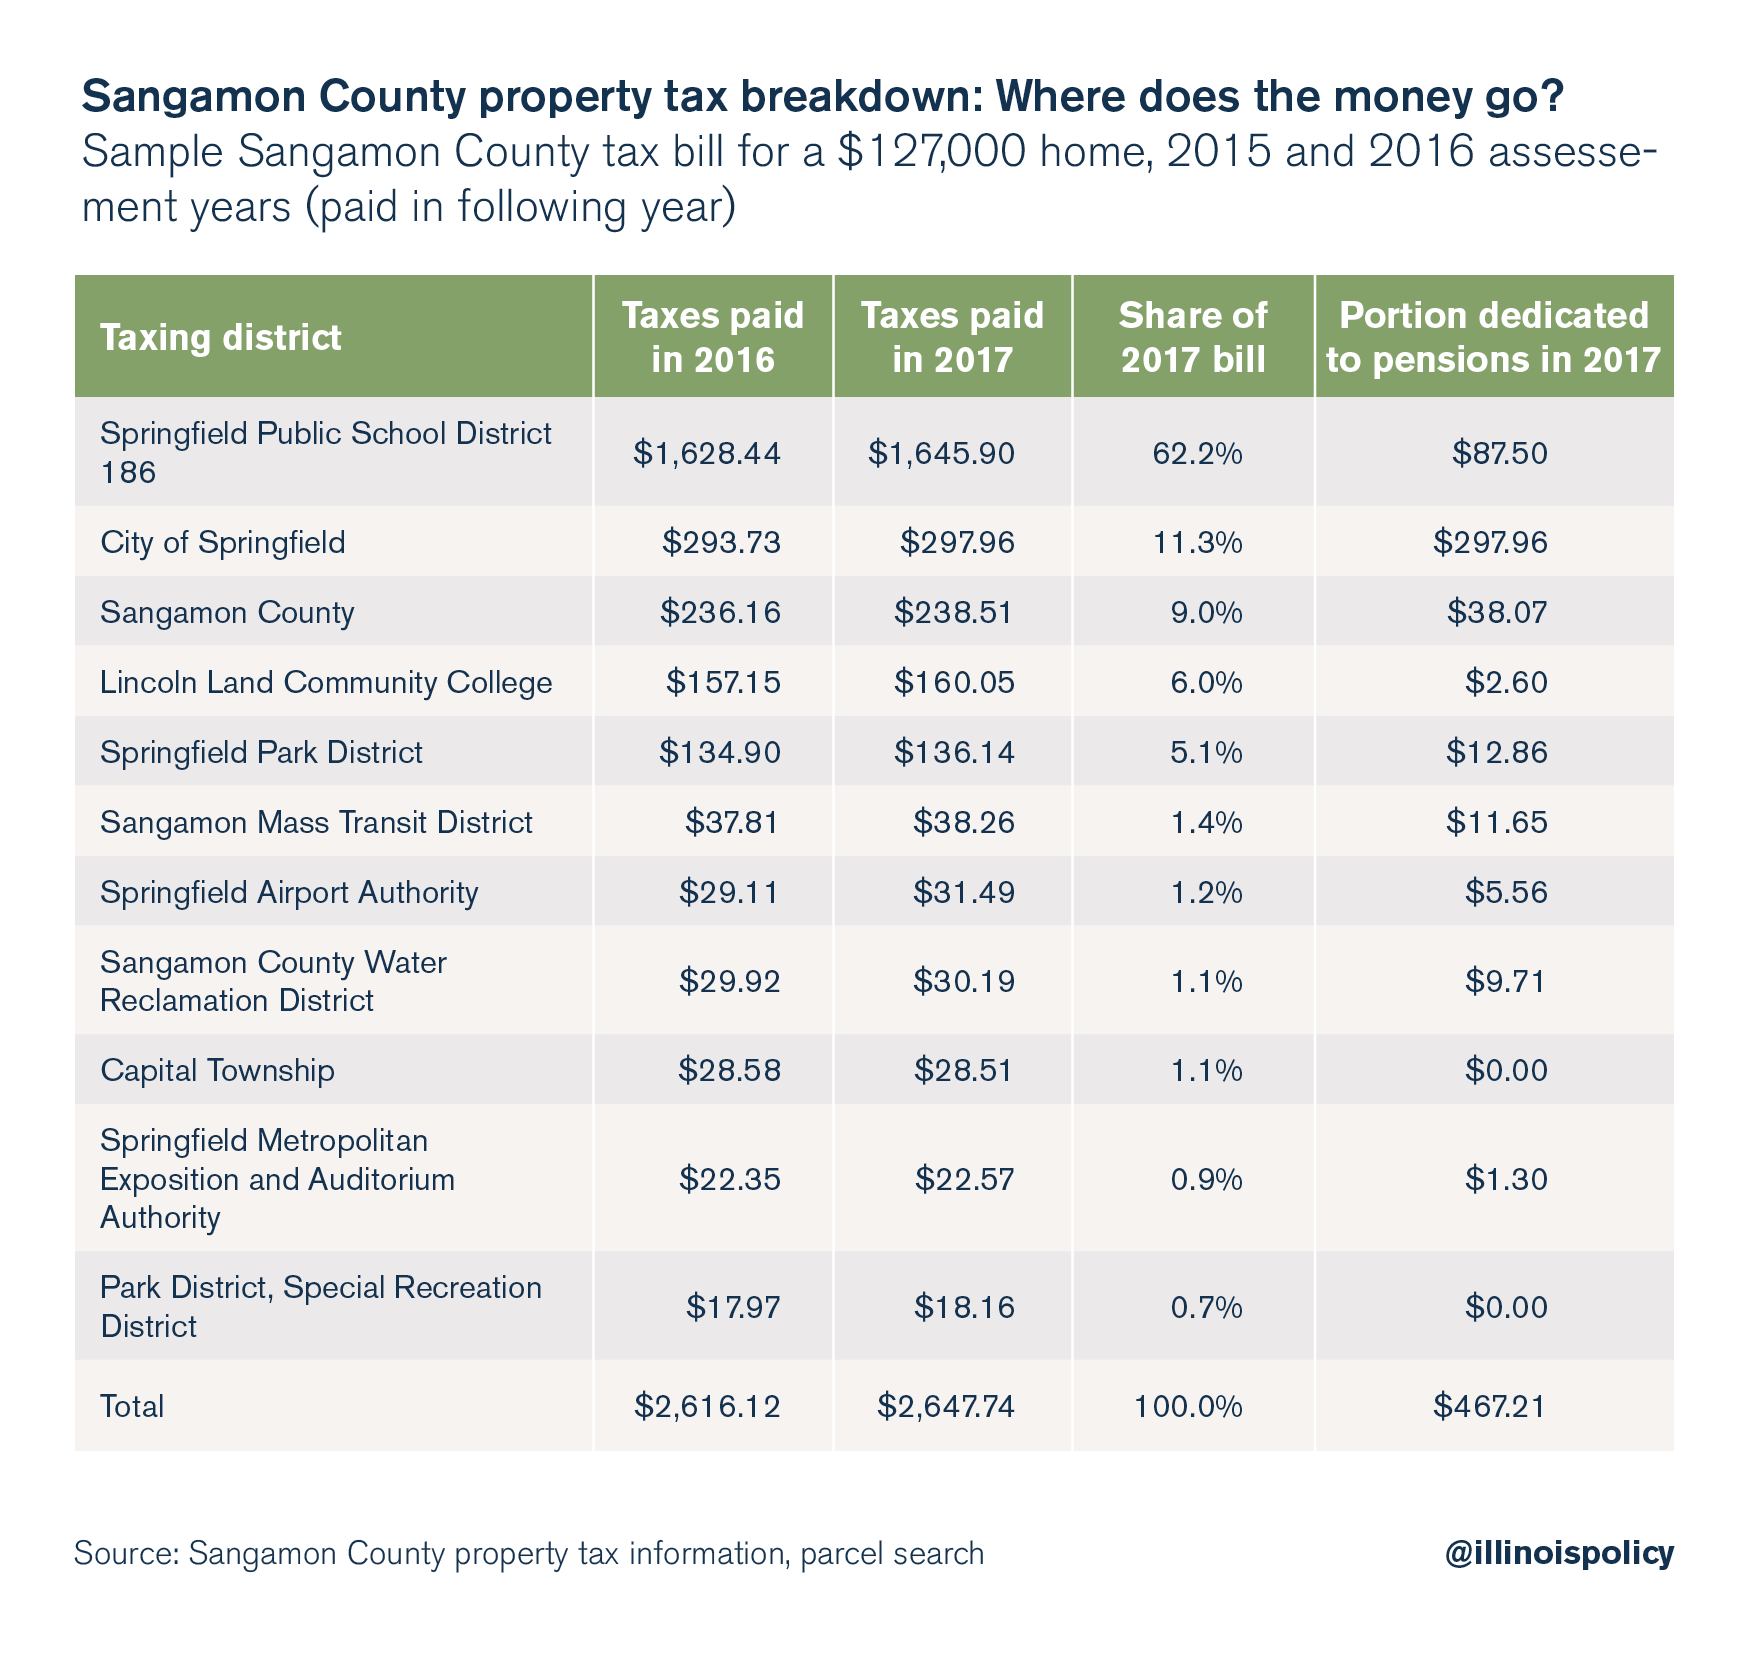 Sangamon County property tax breakdown: Where does the money go?